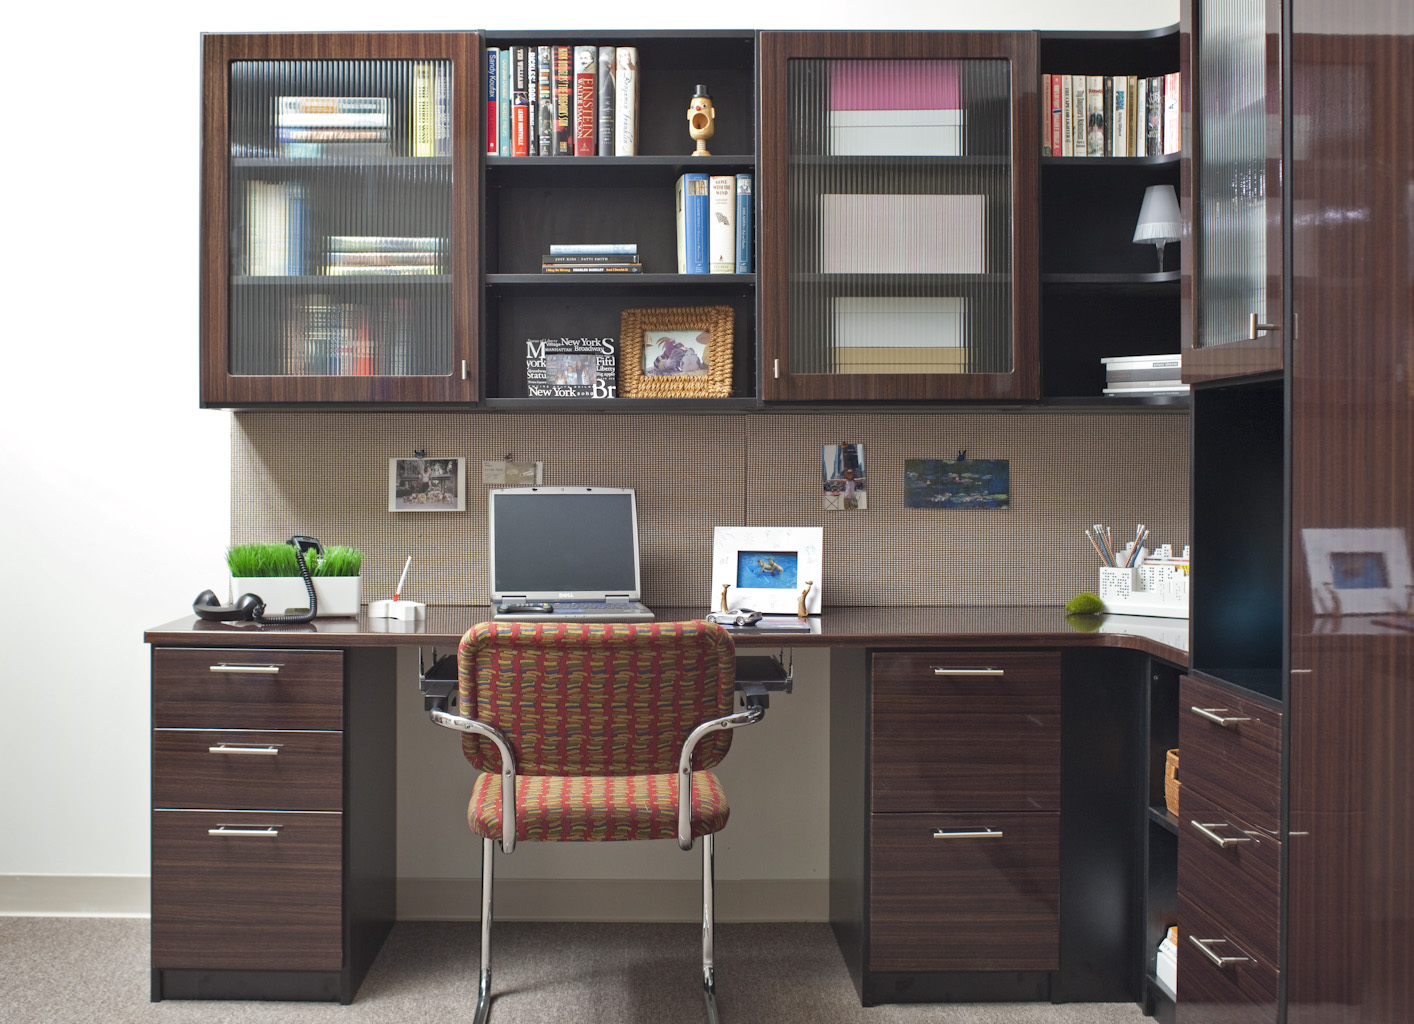 is your home office a mess?